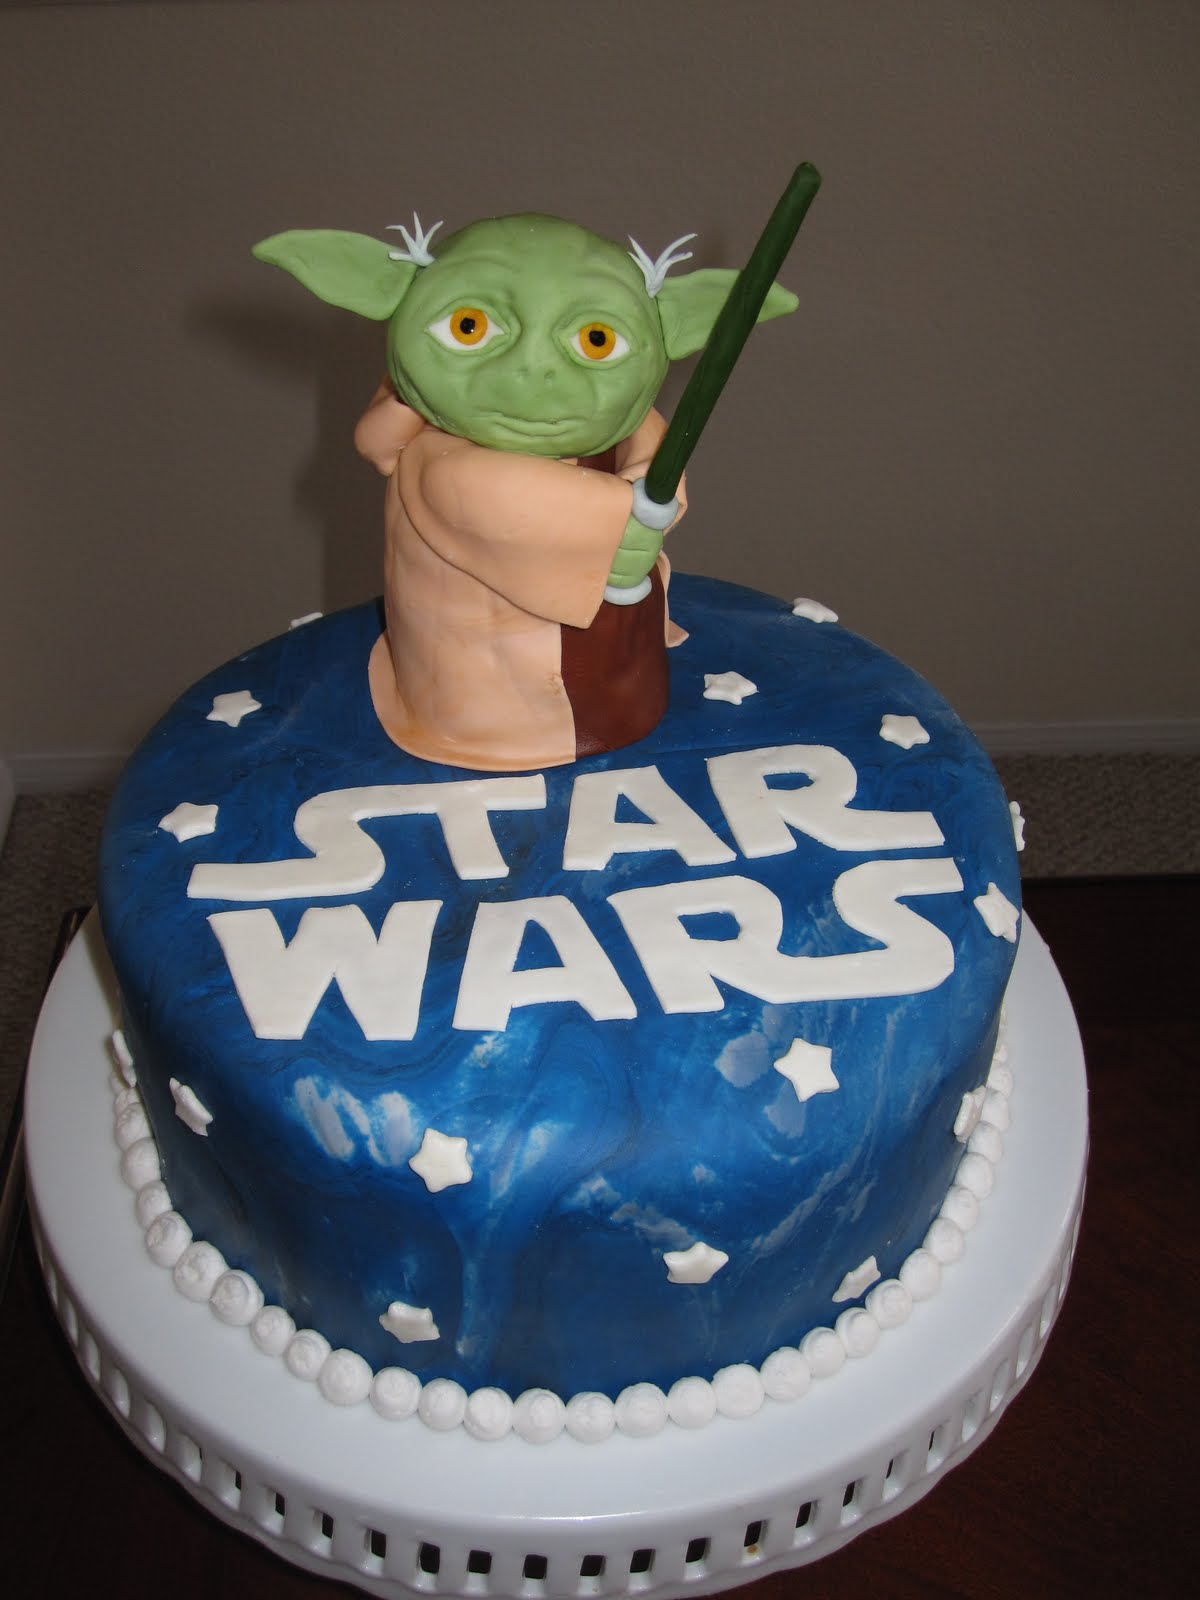 Yoda Star Wars Cake. I Made This Cake For My Sonu0027s 6th Birthday Party. This  Is A 9 Inch Lemon Cake. The Yoda On Top Is Pretty Big And Is Made Of Rice  Krispy ...